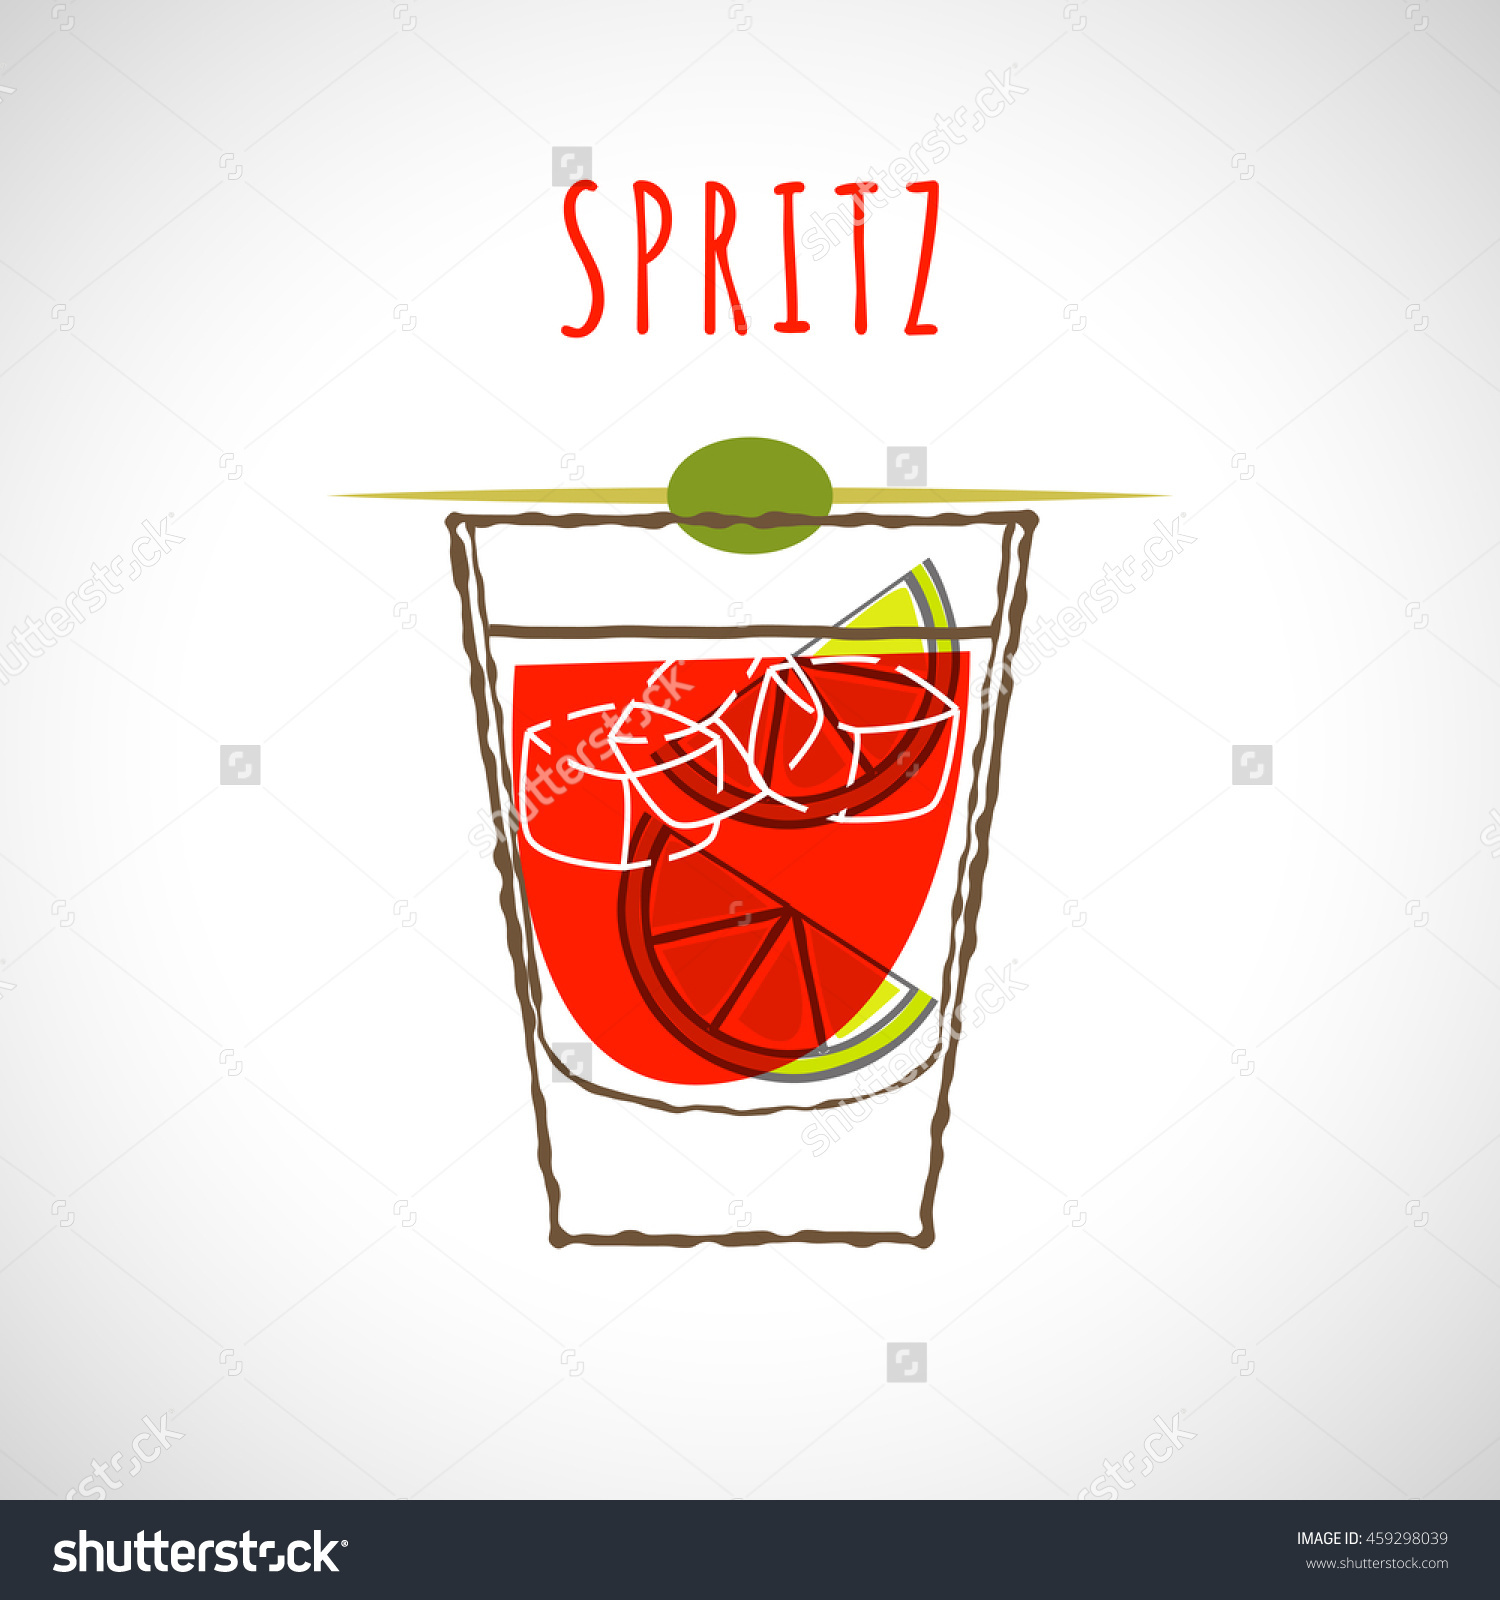 Vector Illustration Of Cocktail Spritz Stylized In Color.